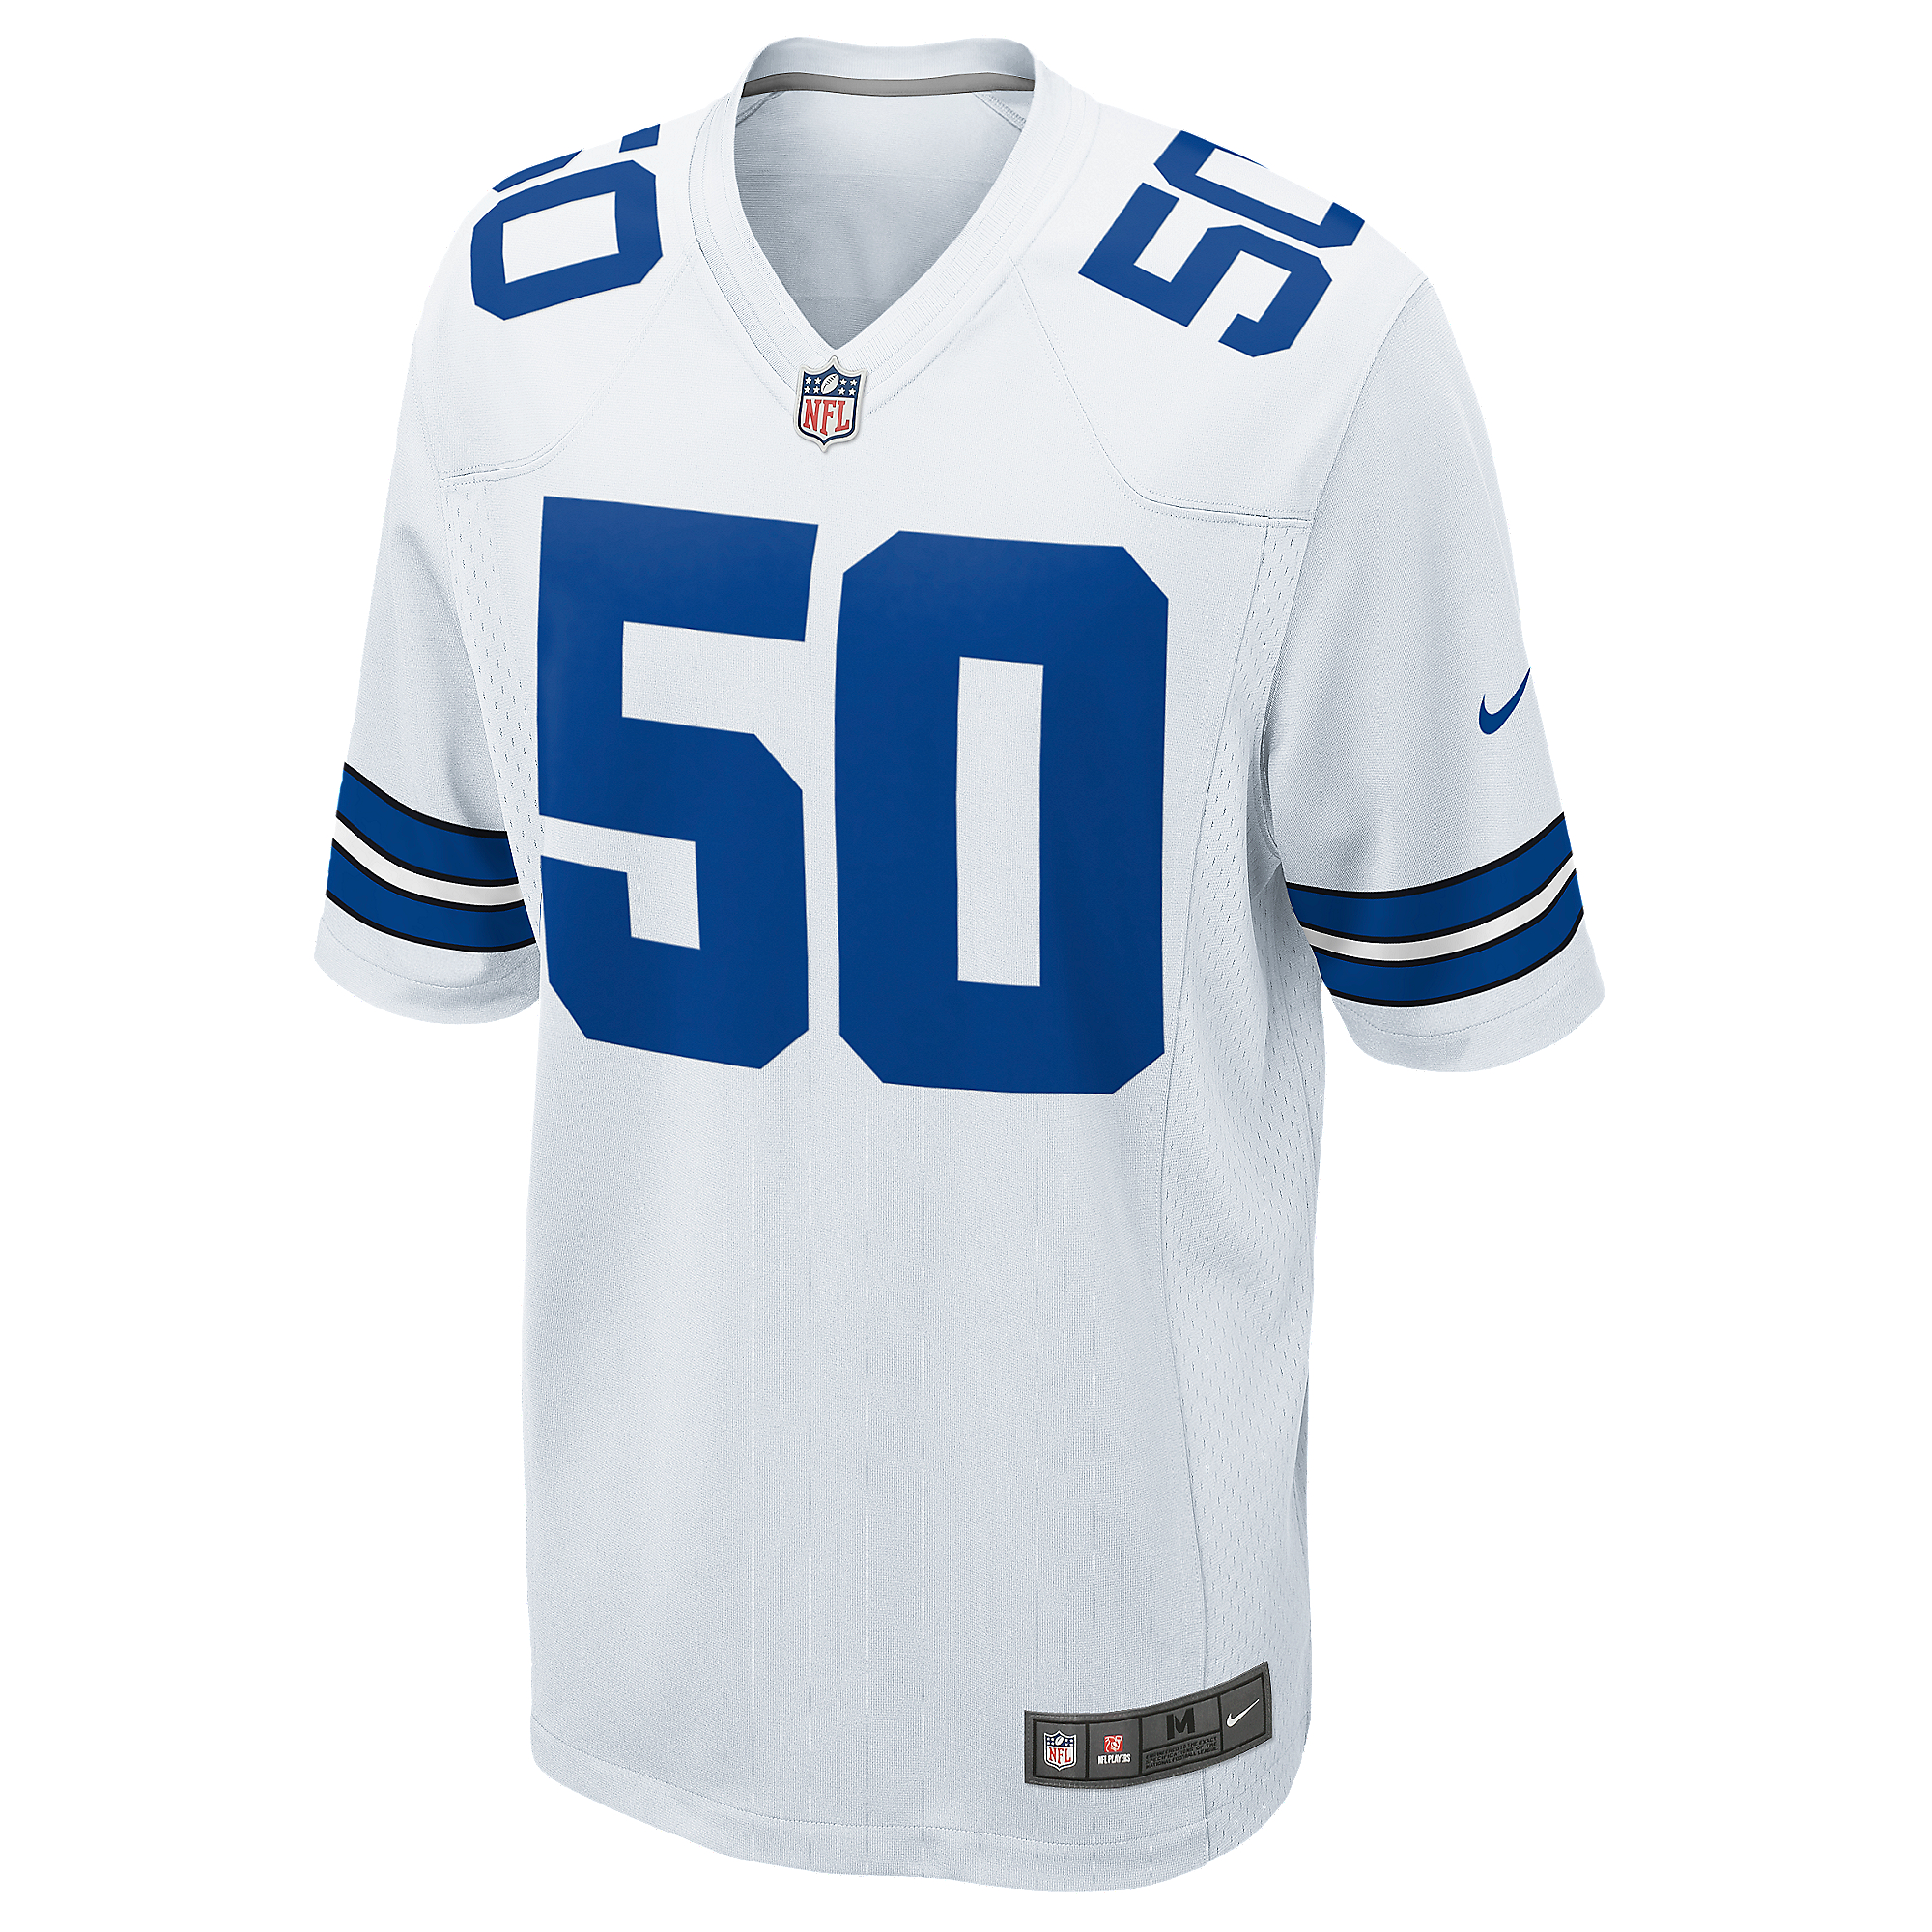 best website a2418 1e935 Dallas Cowboys Sean Lee #50 Nike White Game Replica Jersey | Dallas Cowboys  Pro Shop